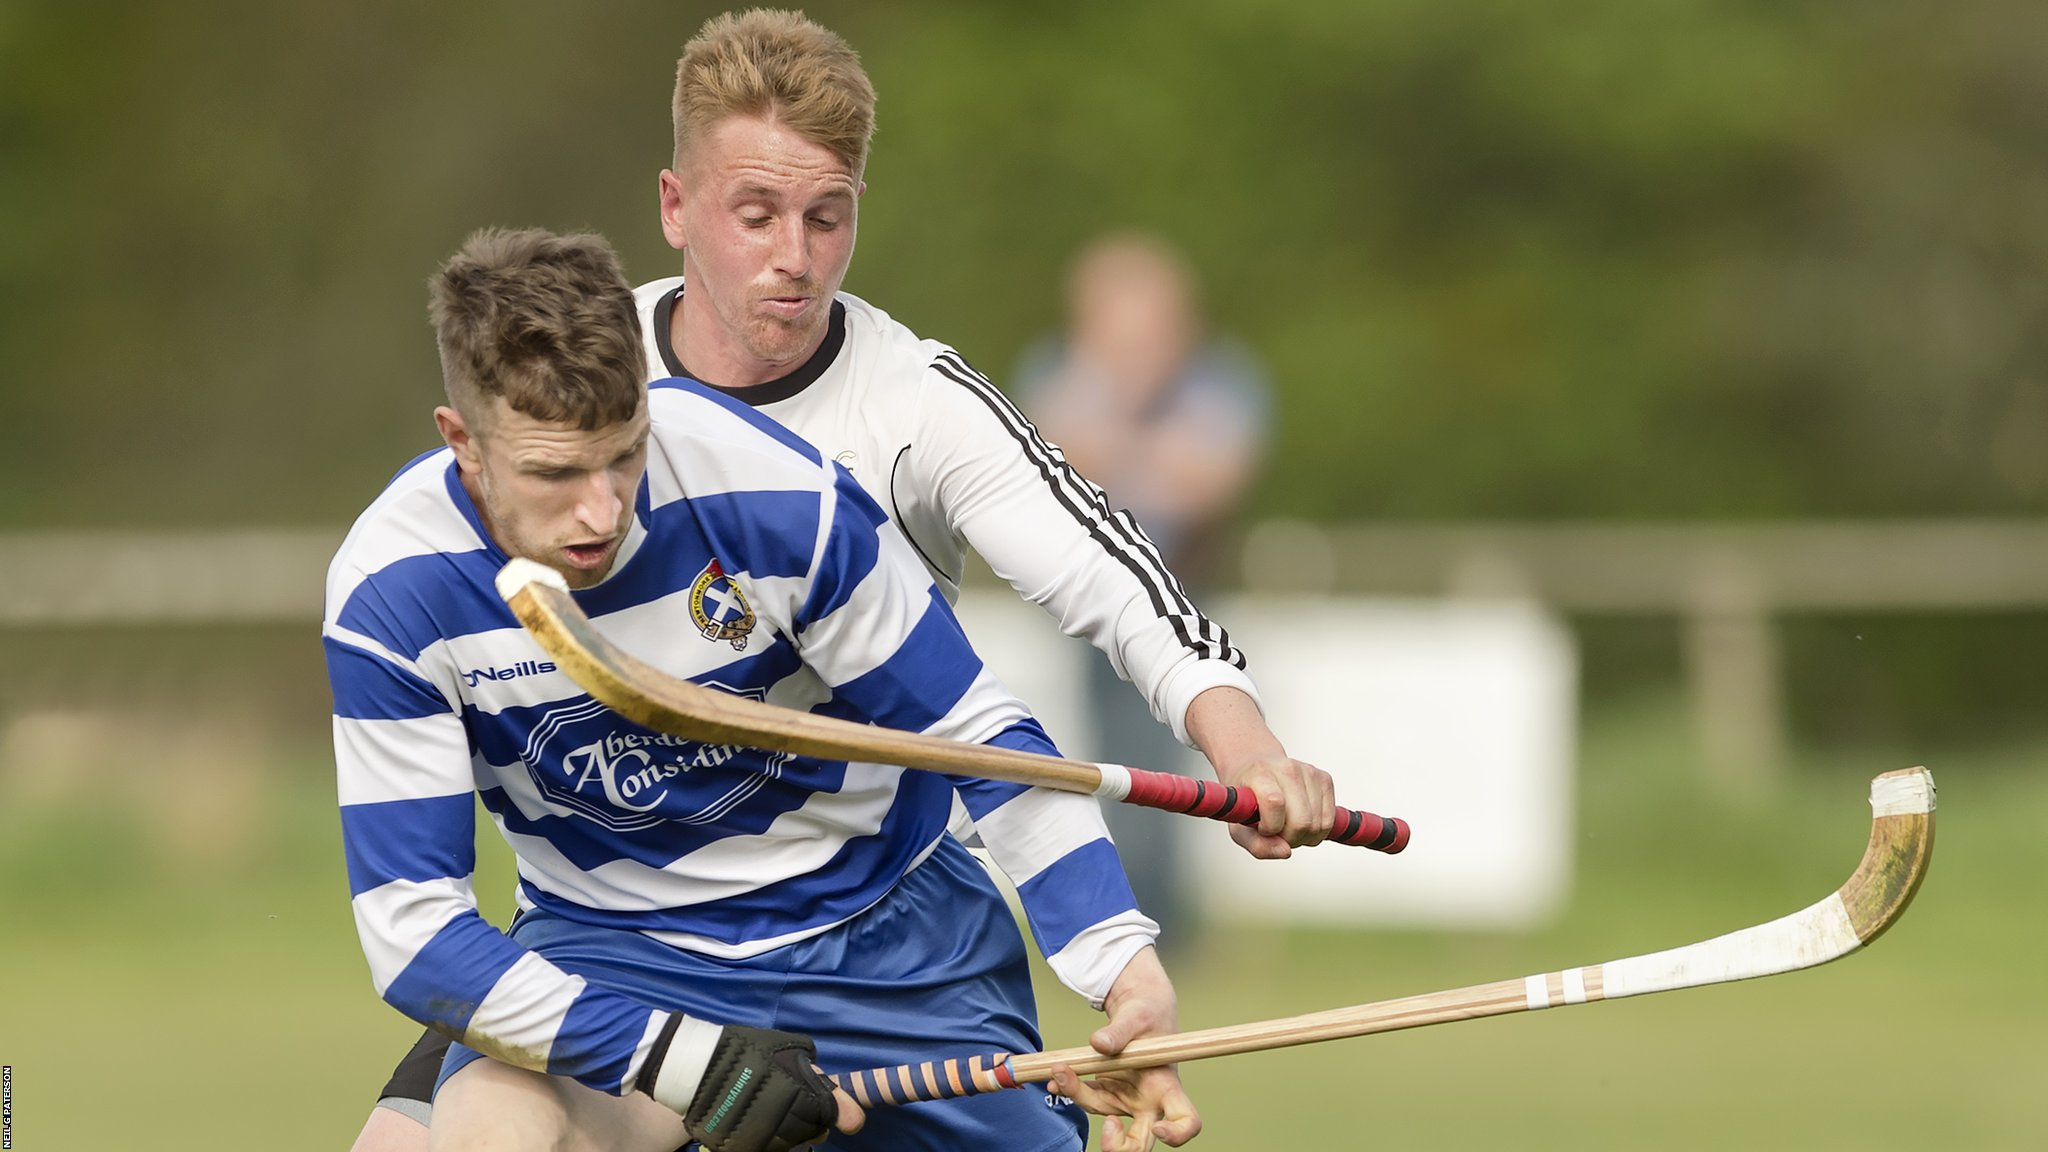 Shinty: Newtonmore to face Kinlochshiel in MacTavish Cup final